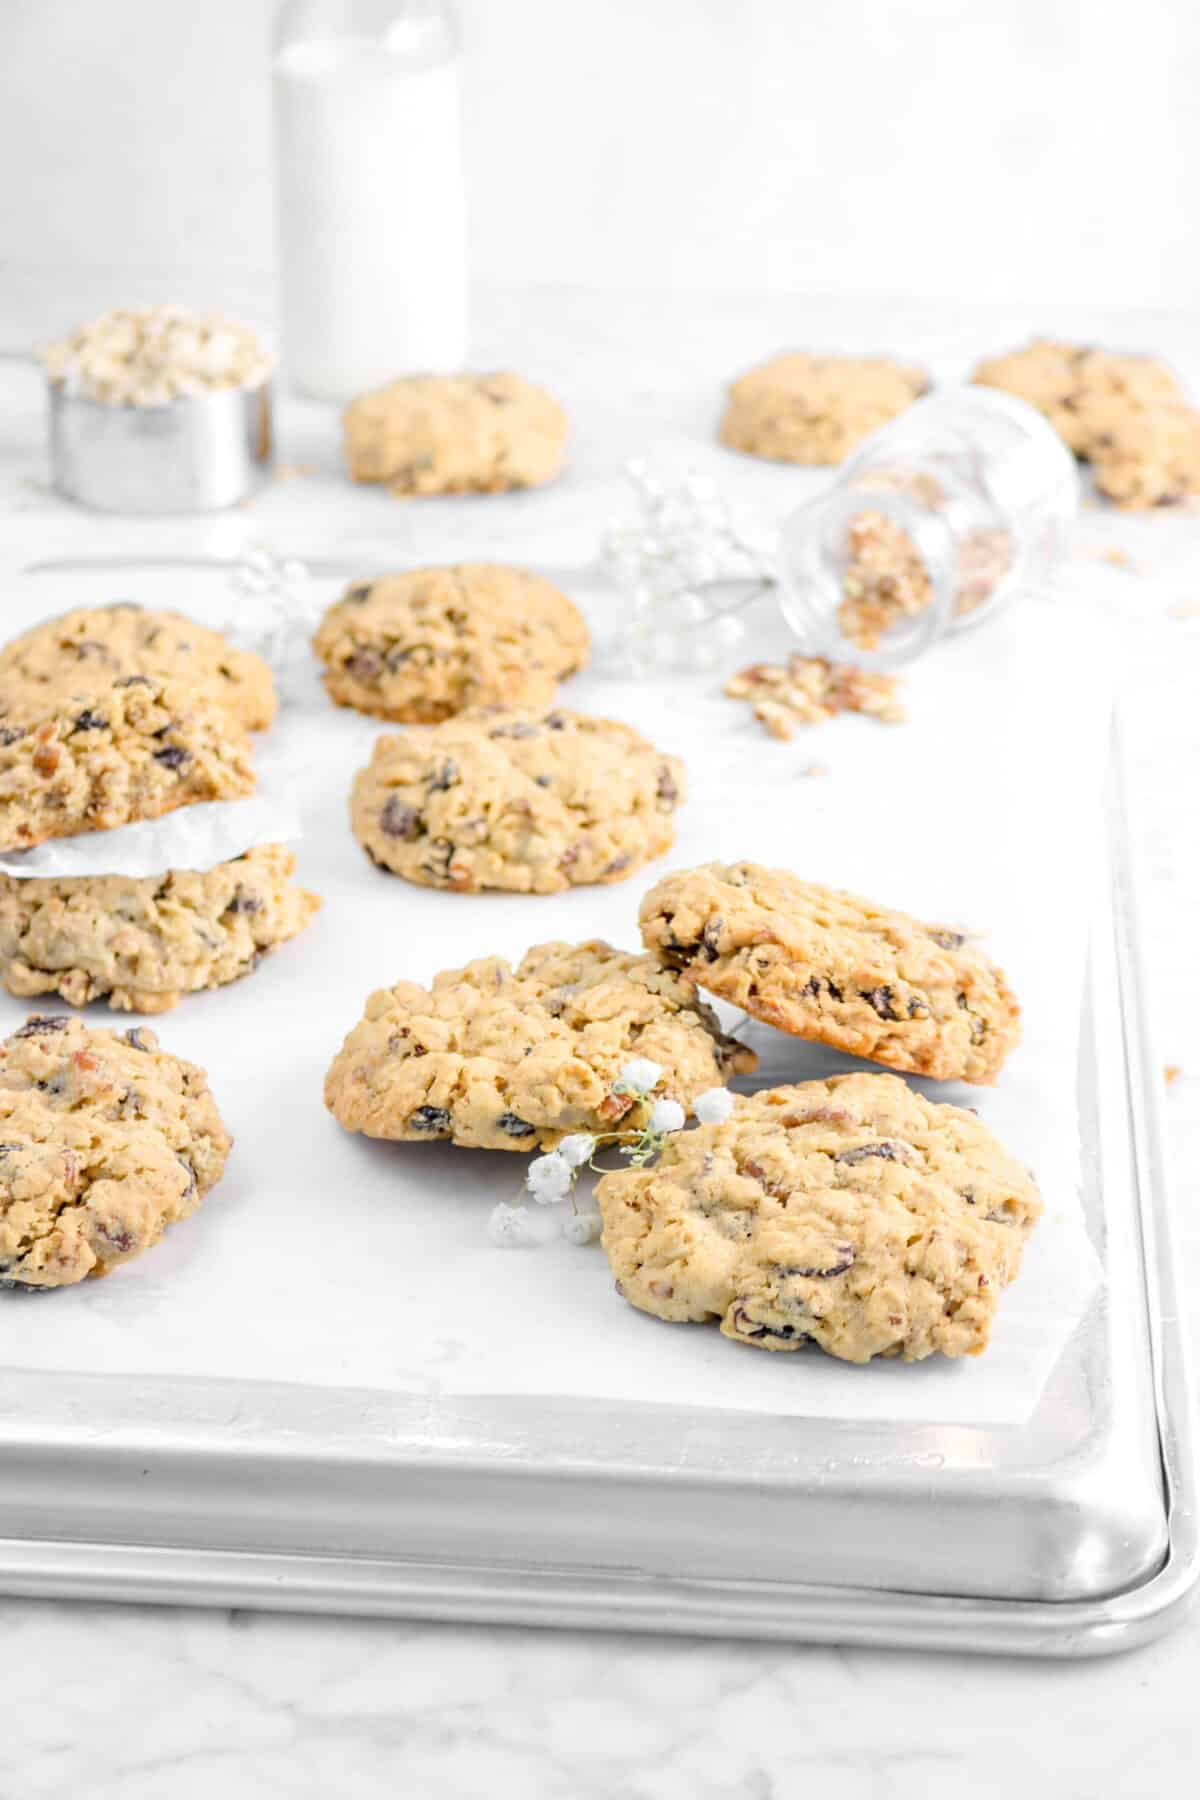 ten cookies on a sheet pan with chopped pecans and flowers, with more cookies behind